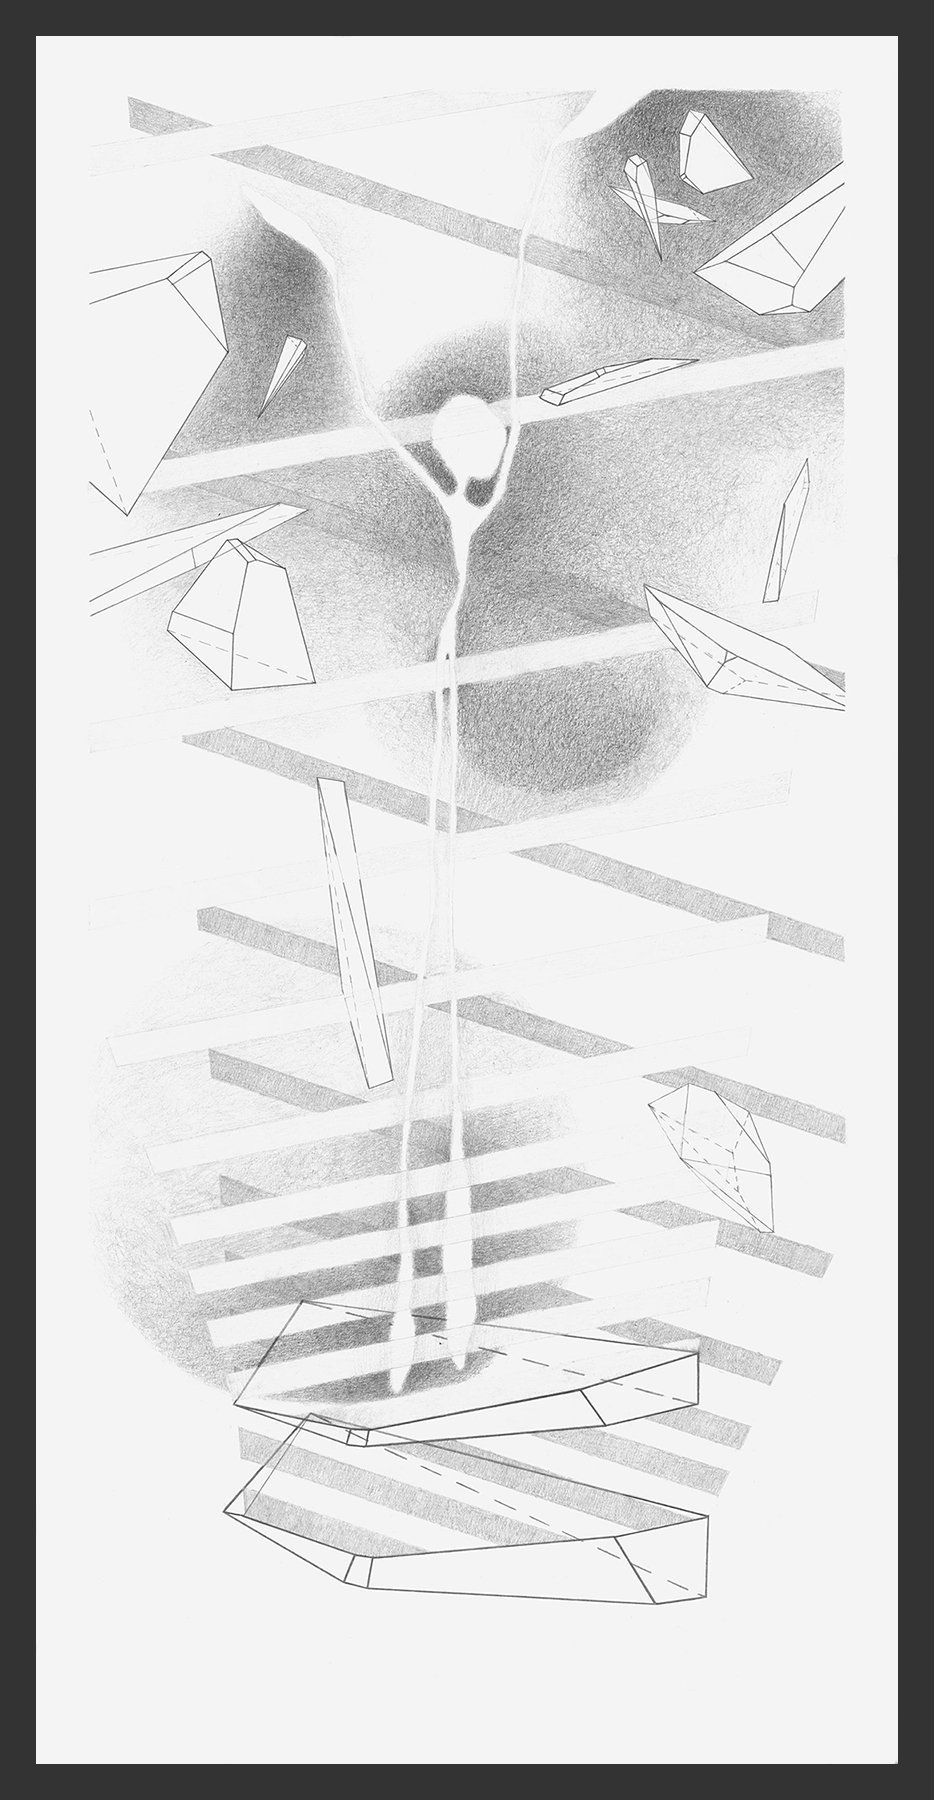 7-Website-Meditation-VII-Graphite-24x12-Astrid-Muller-Karger